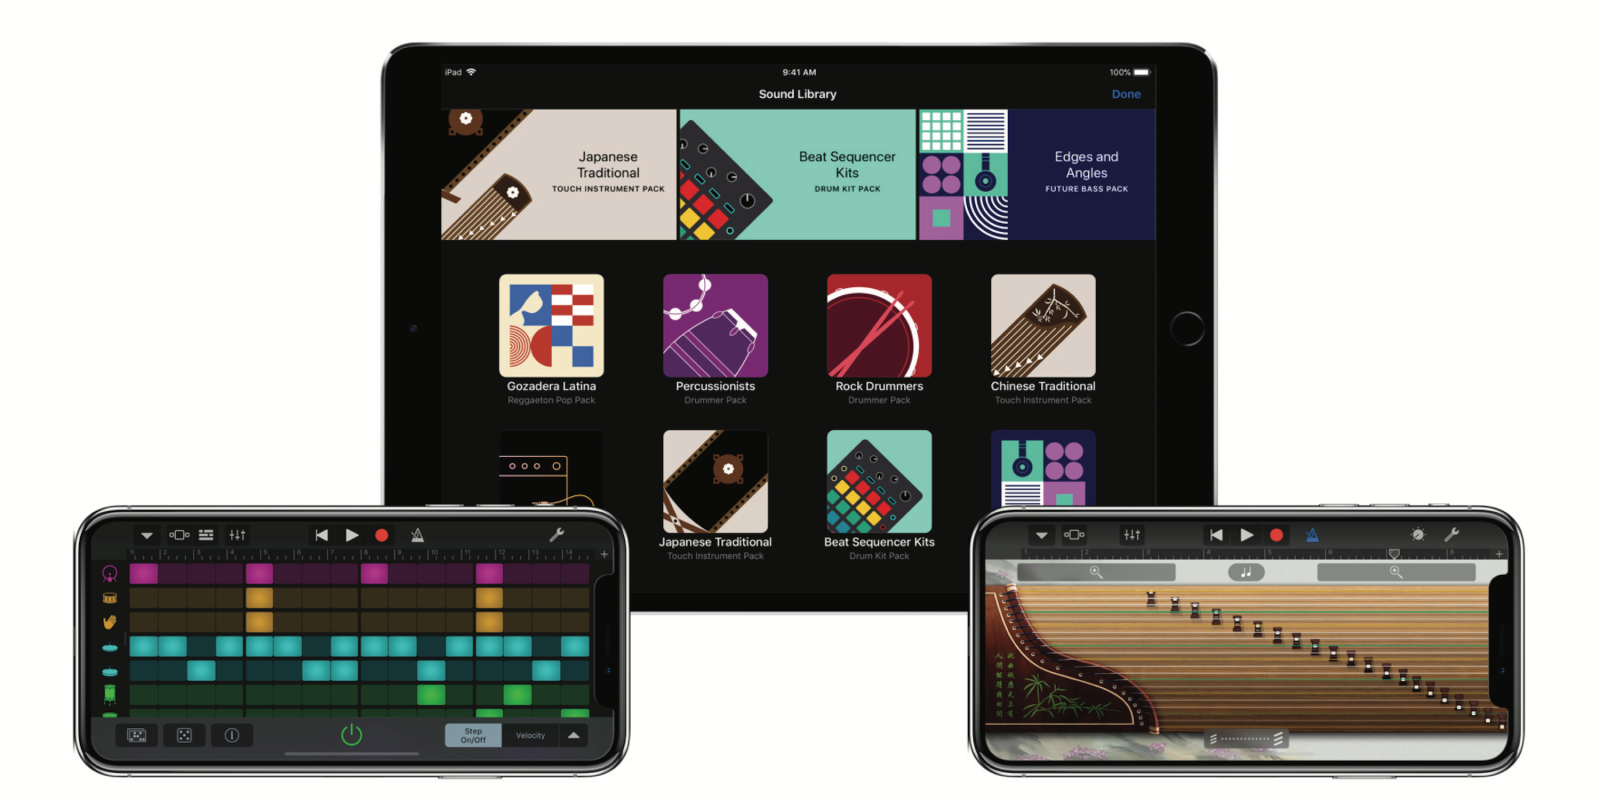 GarageBand 2.3 adds new Sound Library, Beat Sequencer, Instruments, iPhone X support & more